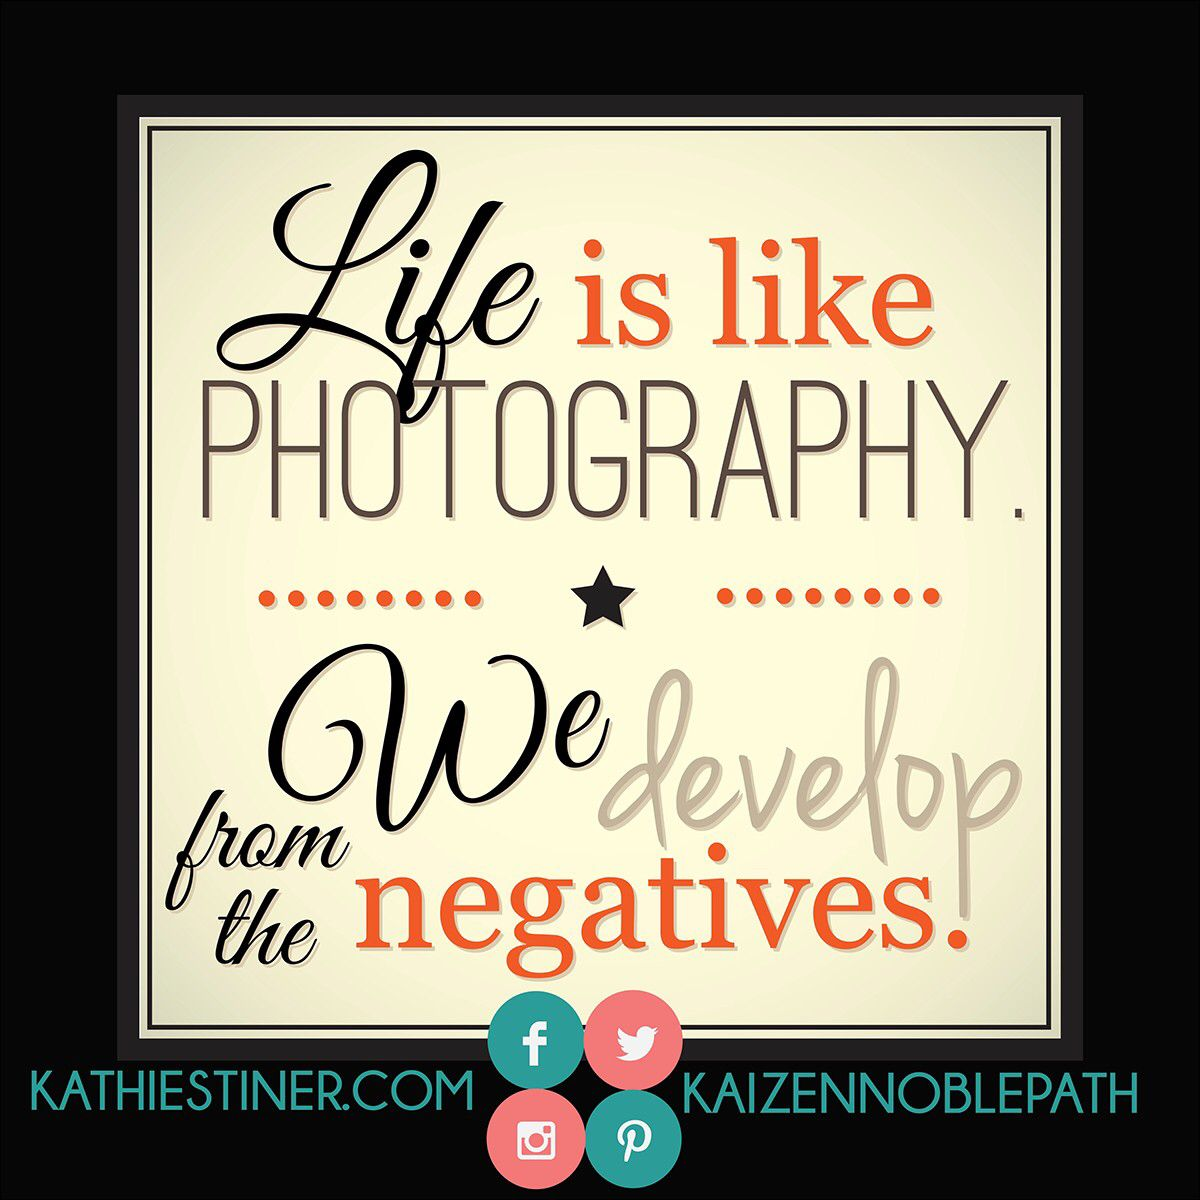 Life is like photography. We develop from the negatives. #Quote #Inspiration